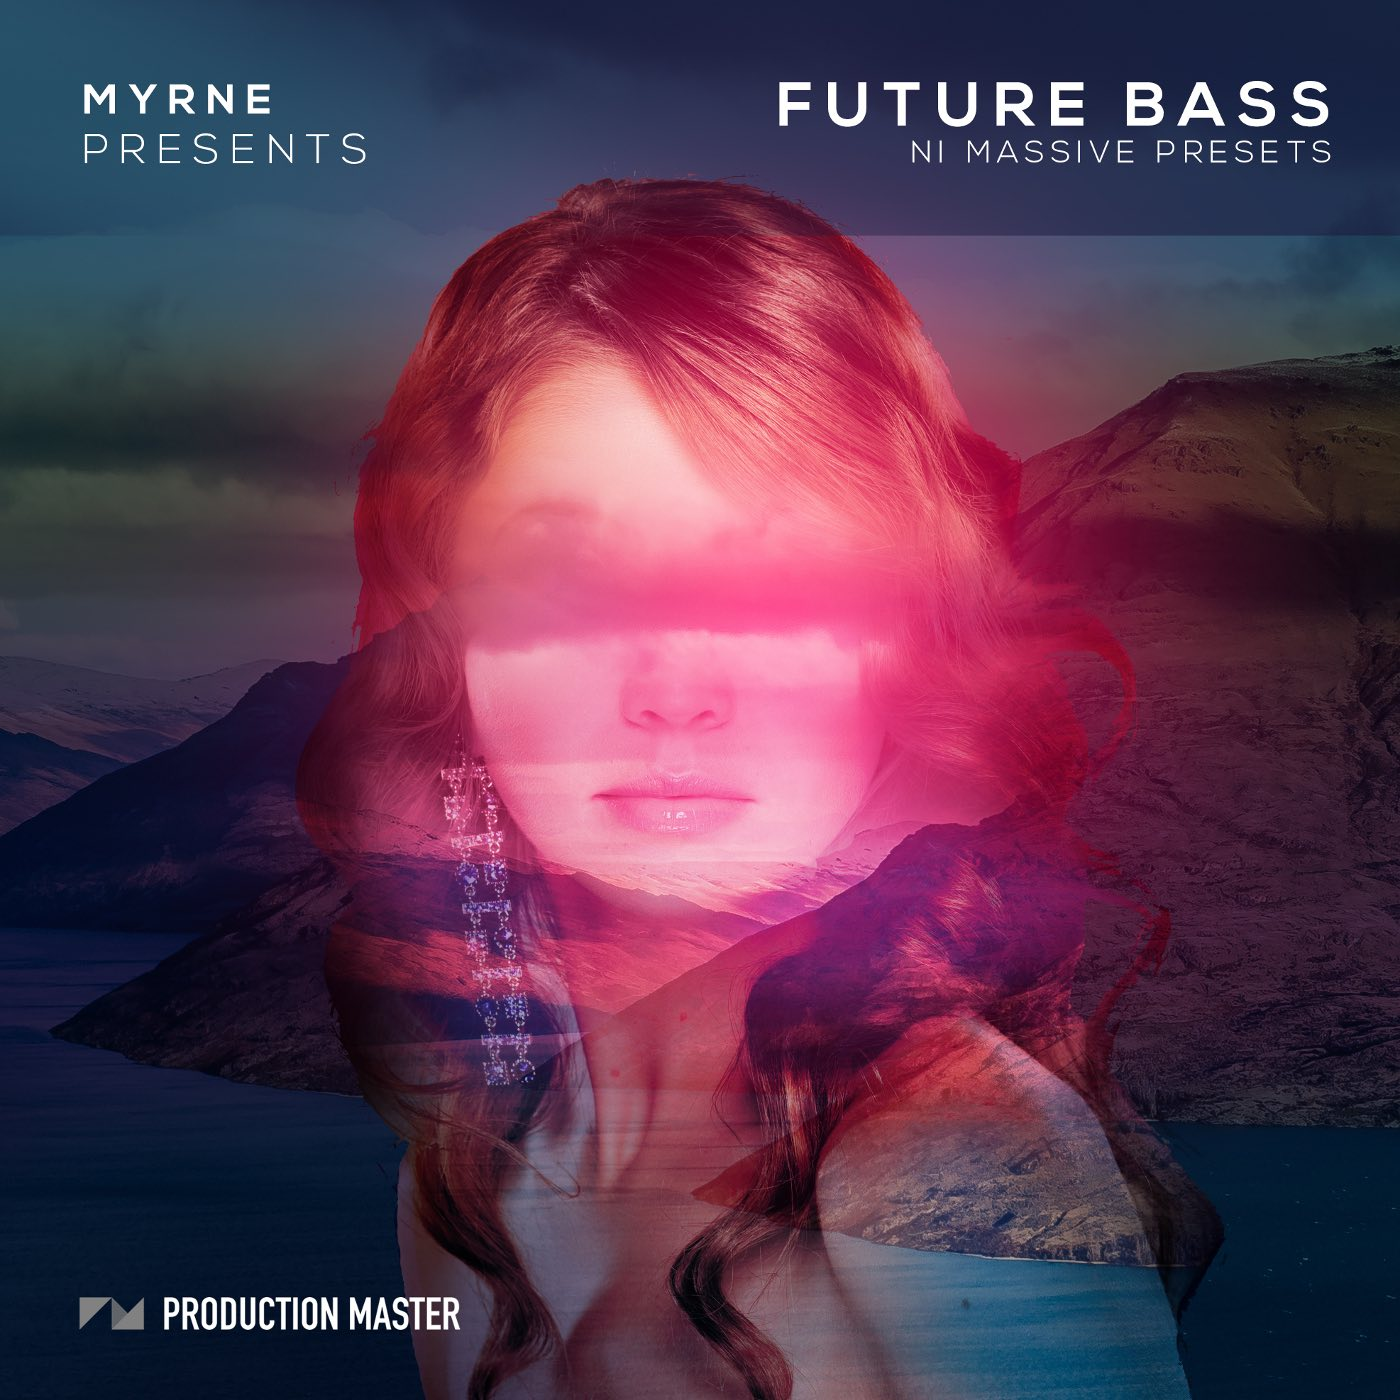 myrne-future-bass-ni-massive1400x1400 copy